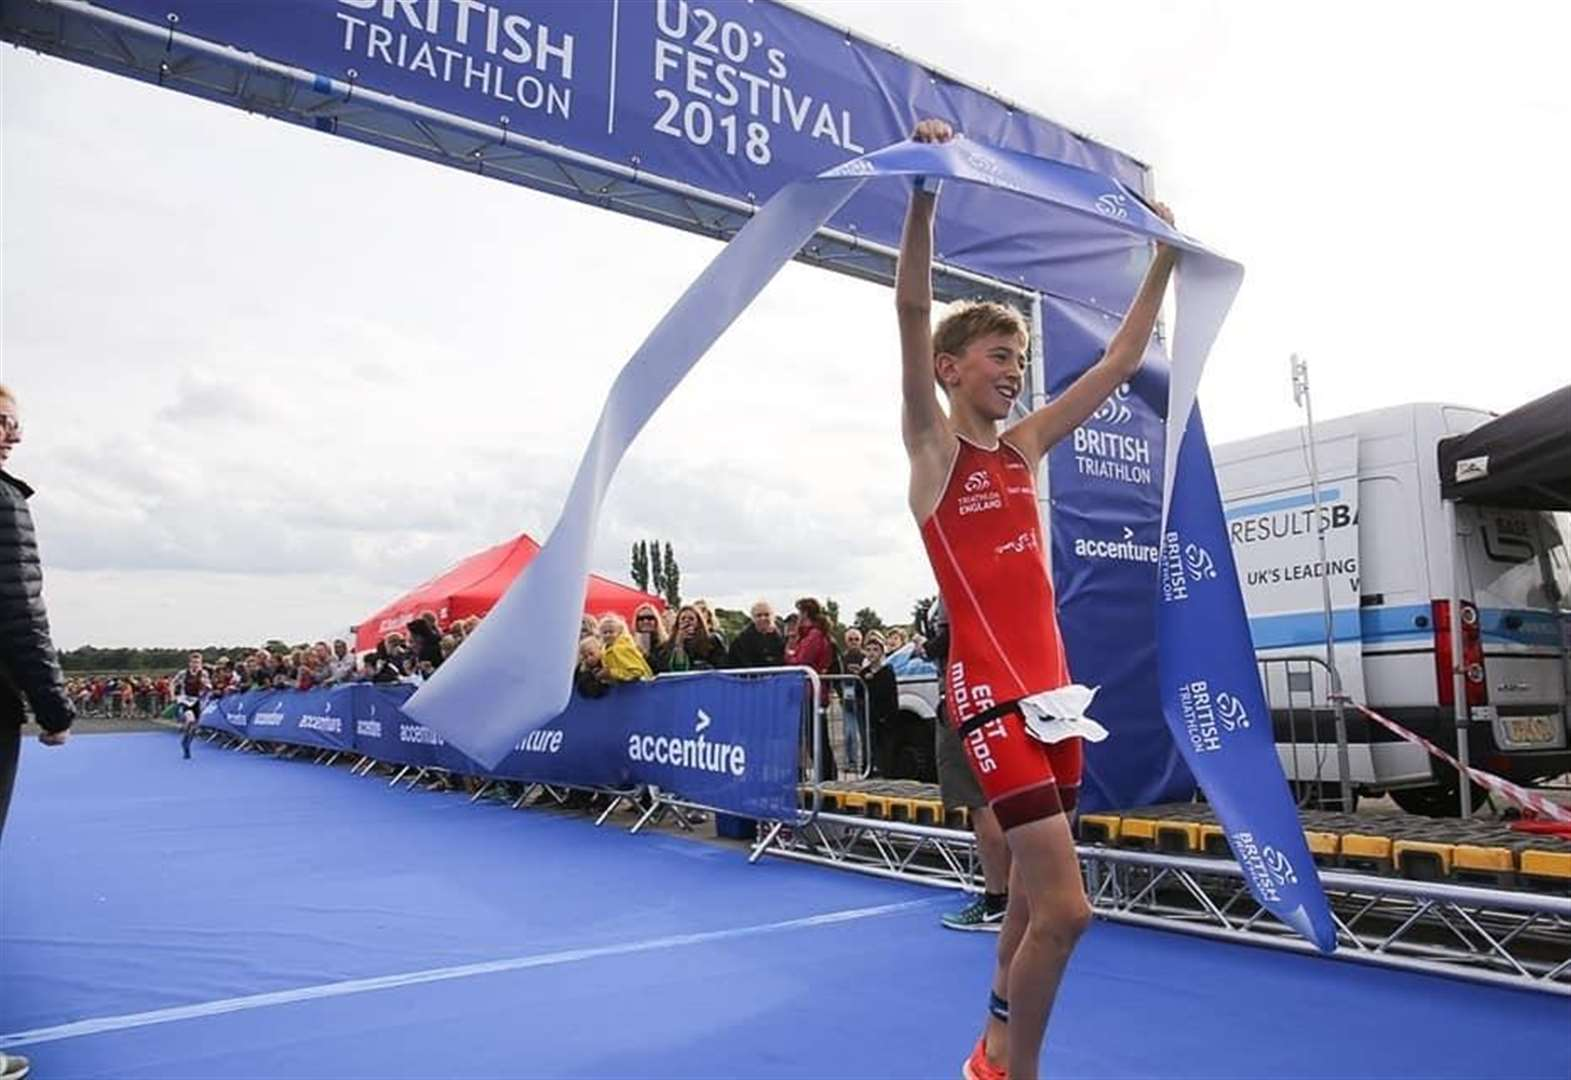 TRIATHLON: Tom exceeds expectations to claim national title glory